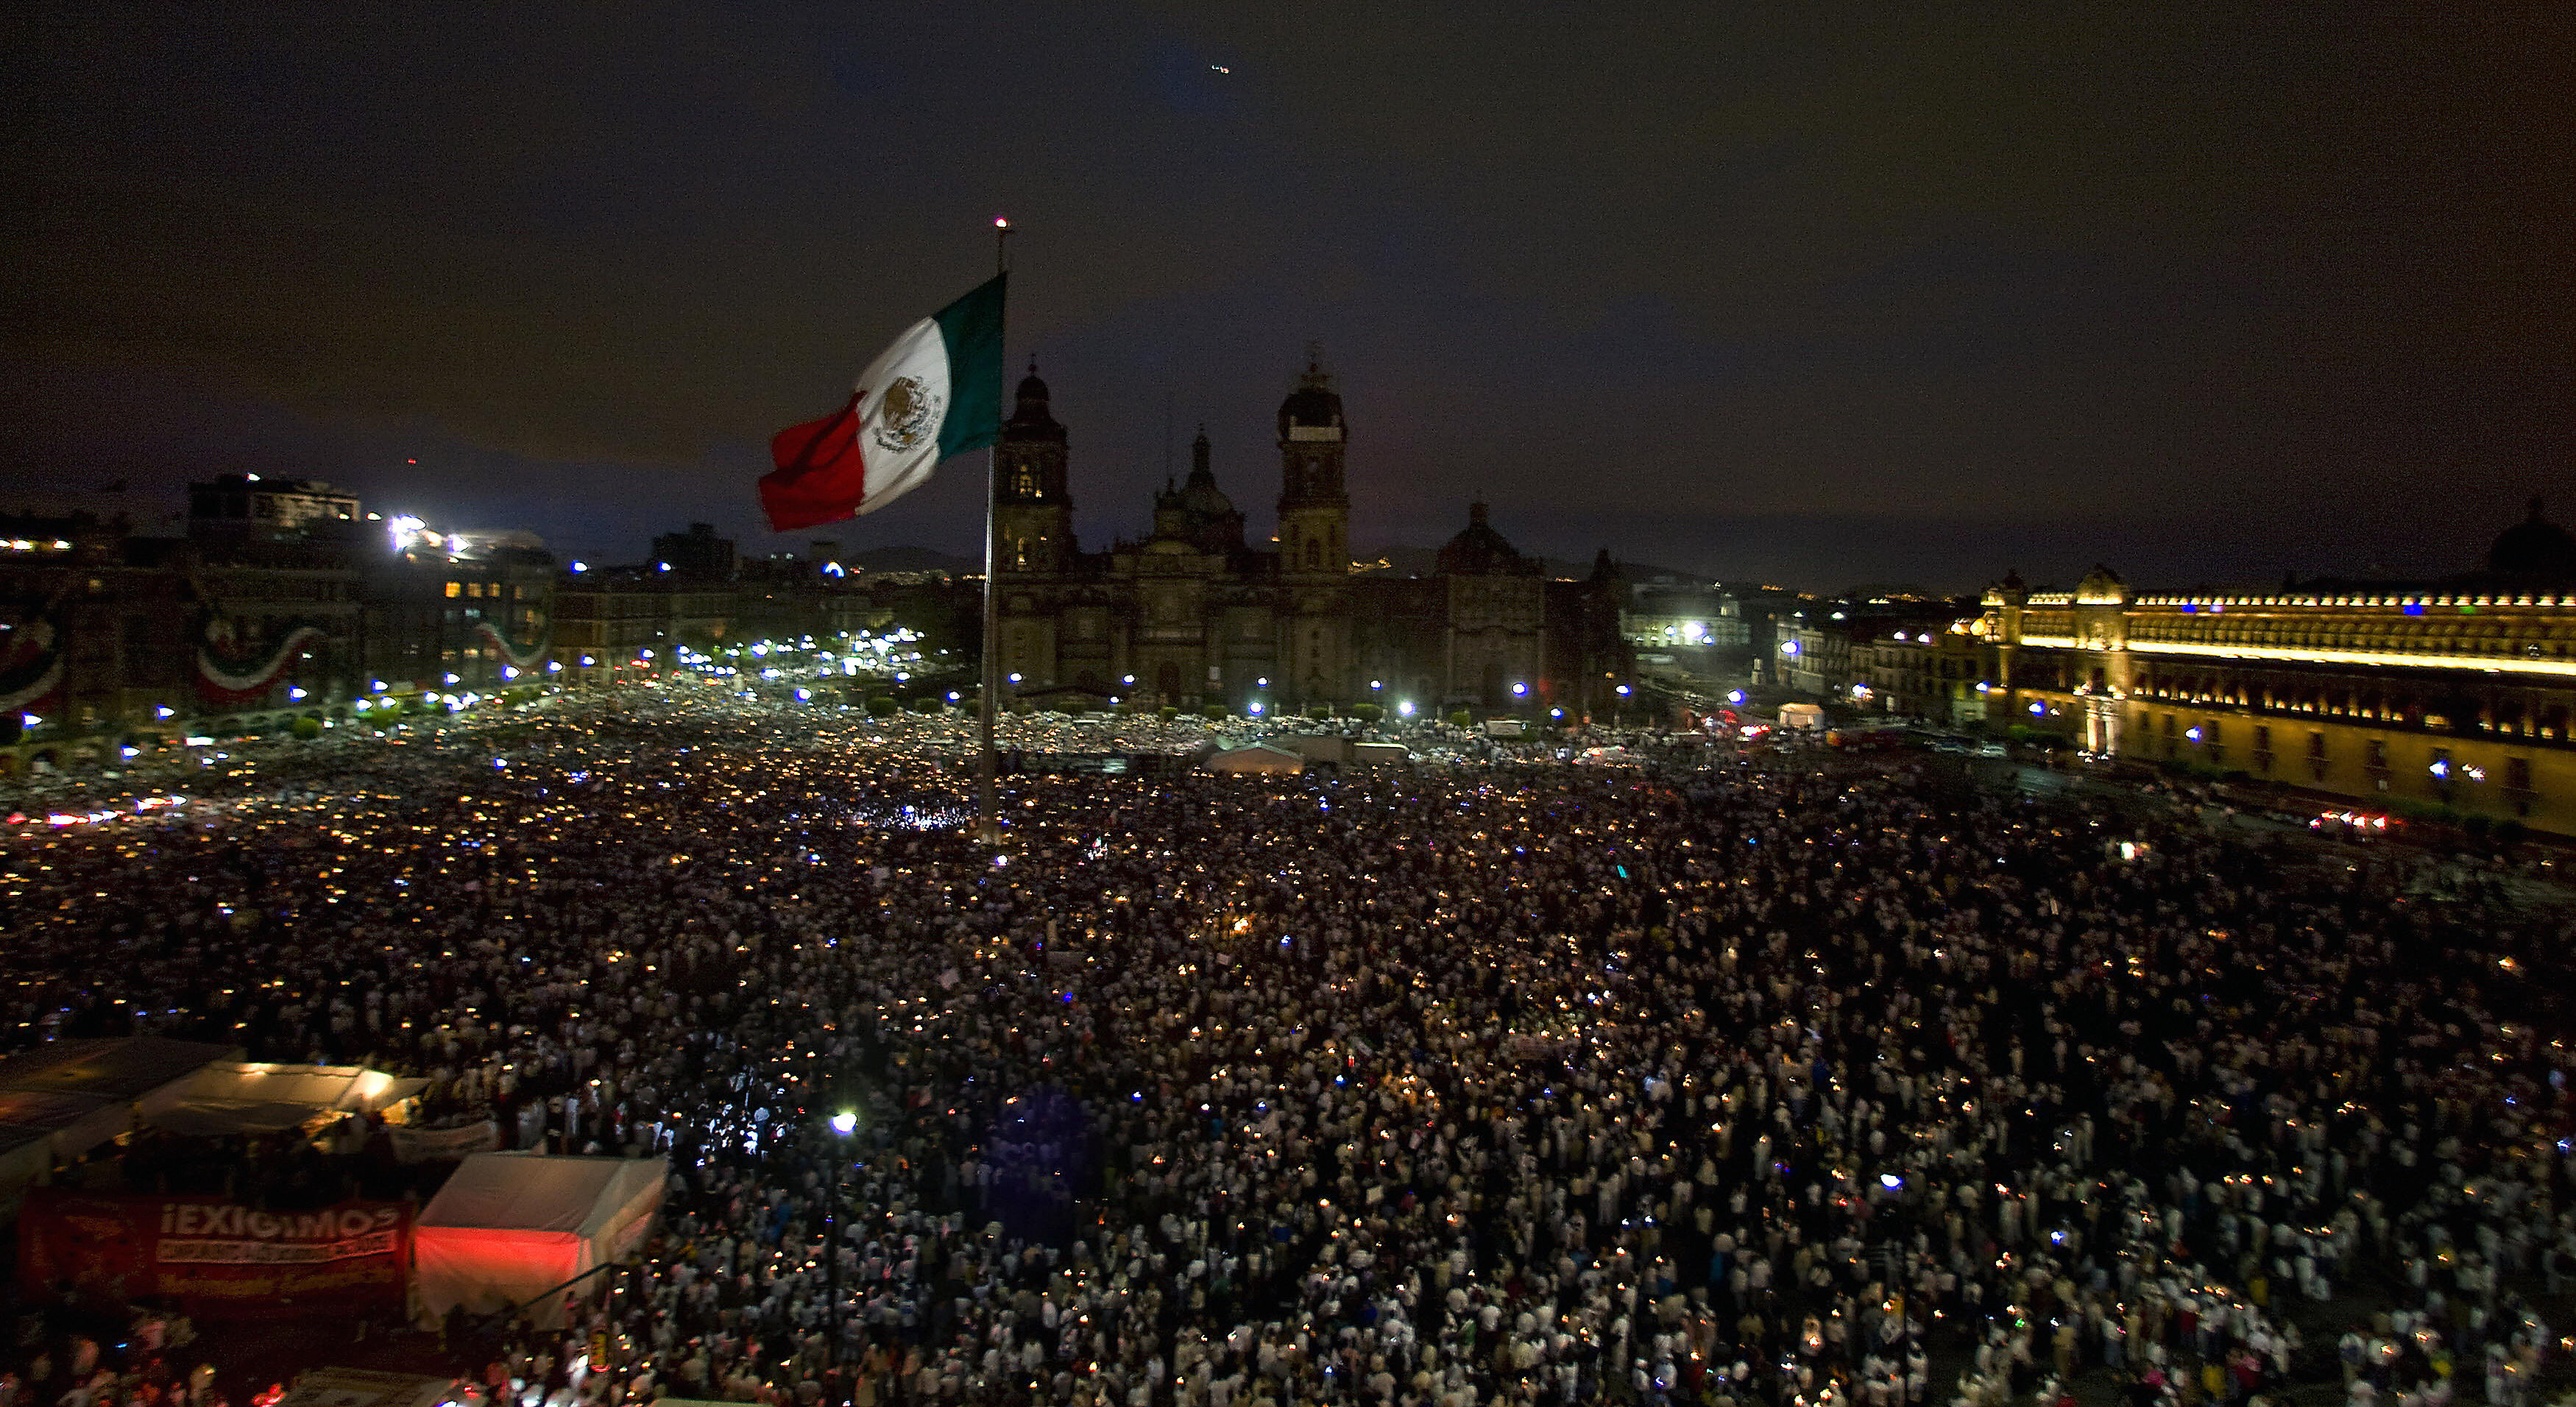 el grito - Mexican Independence Day Celebration